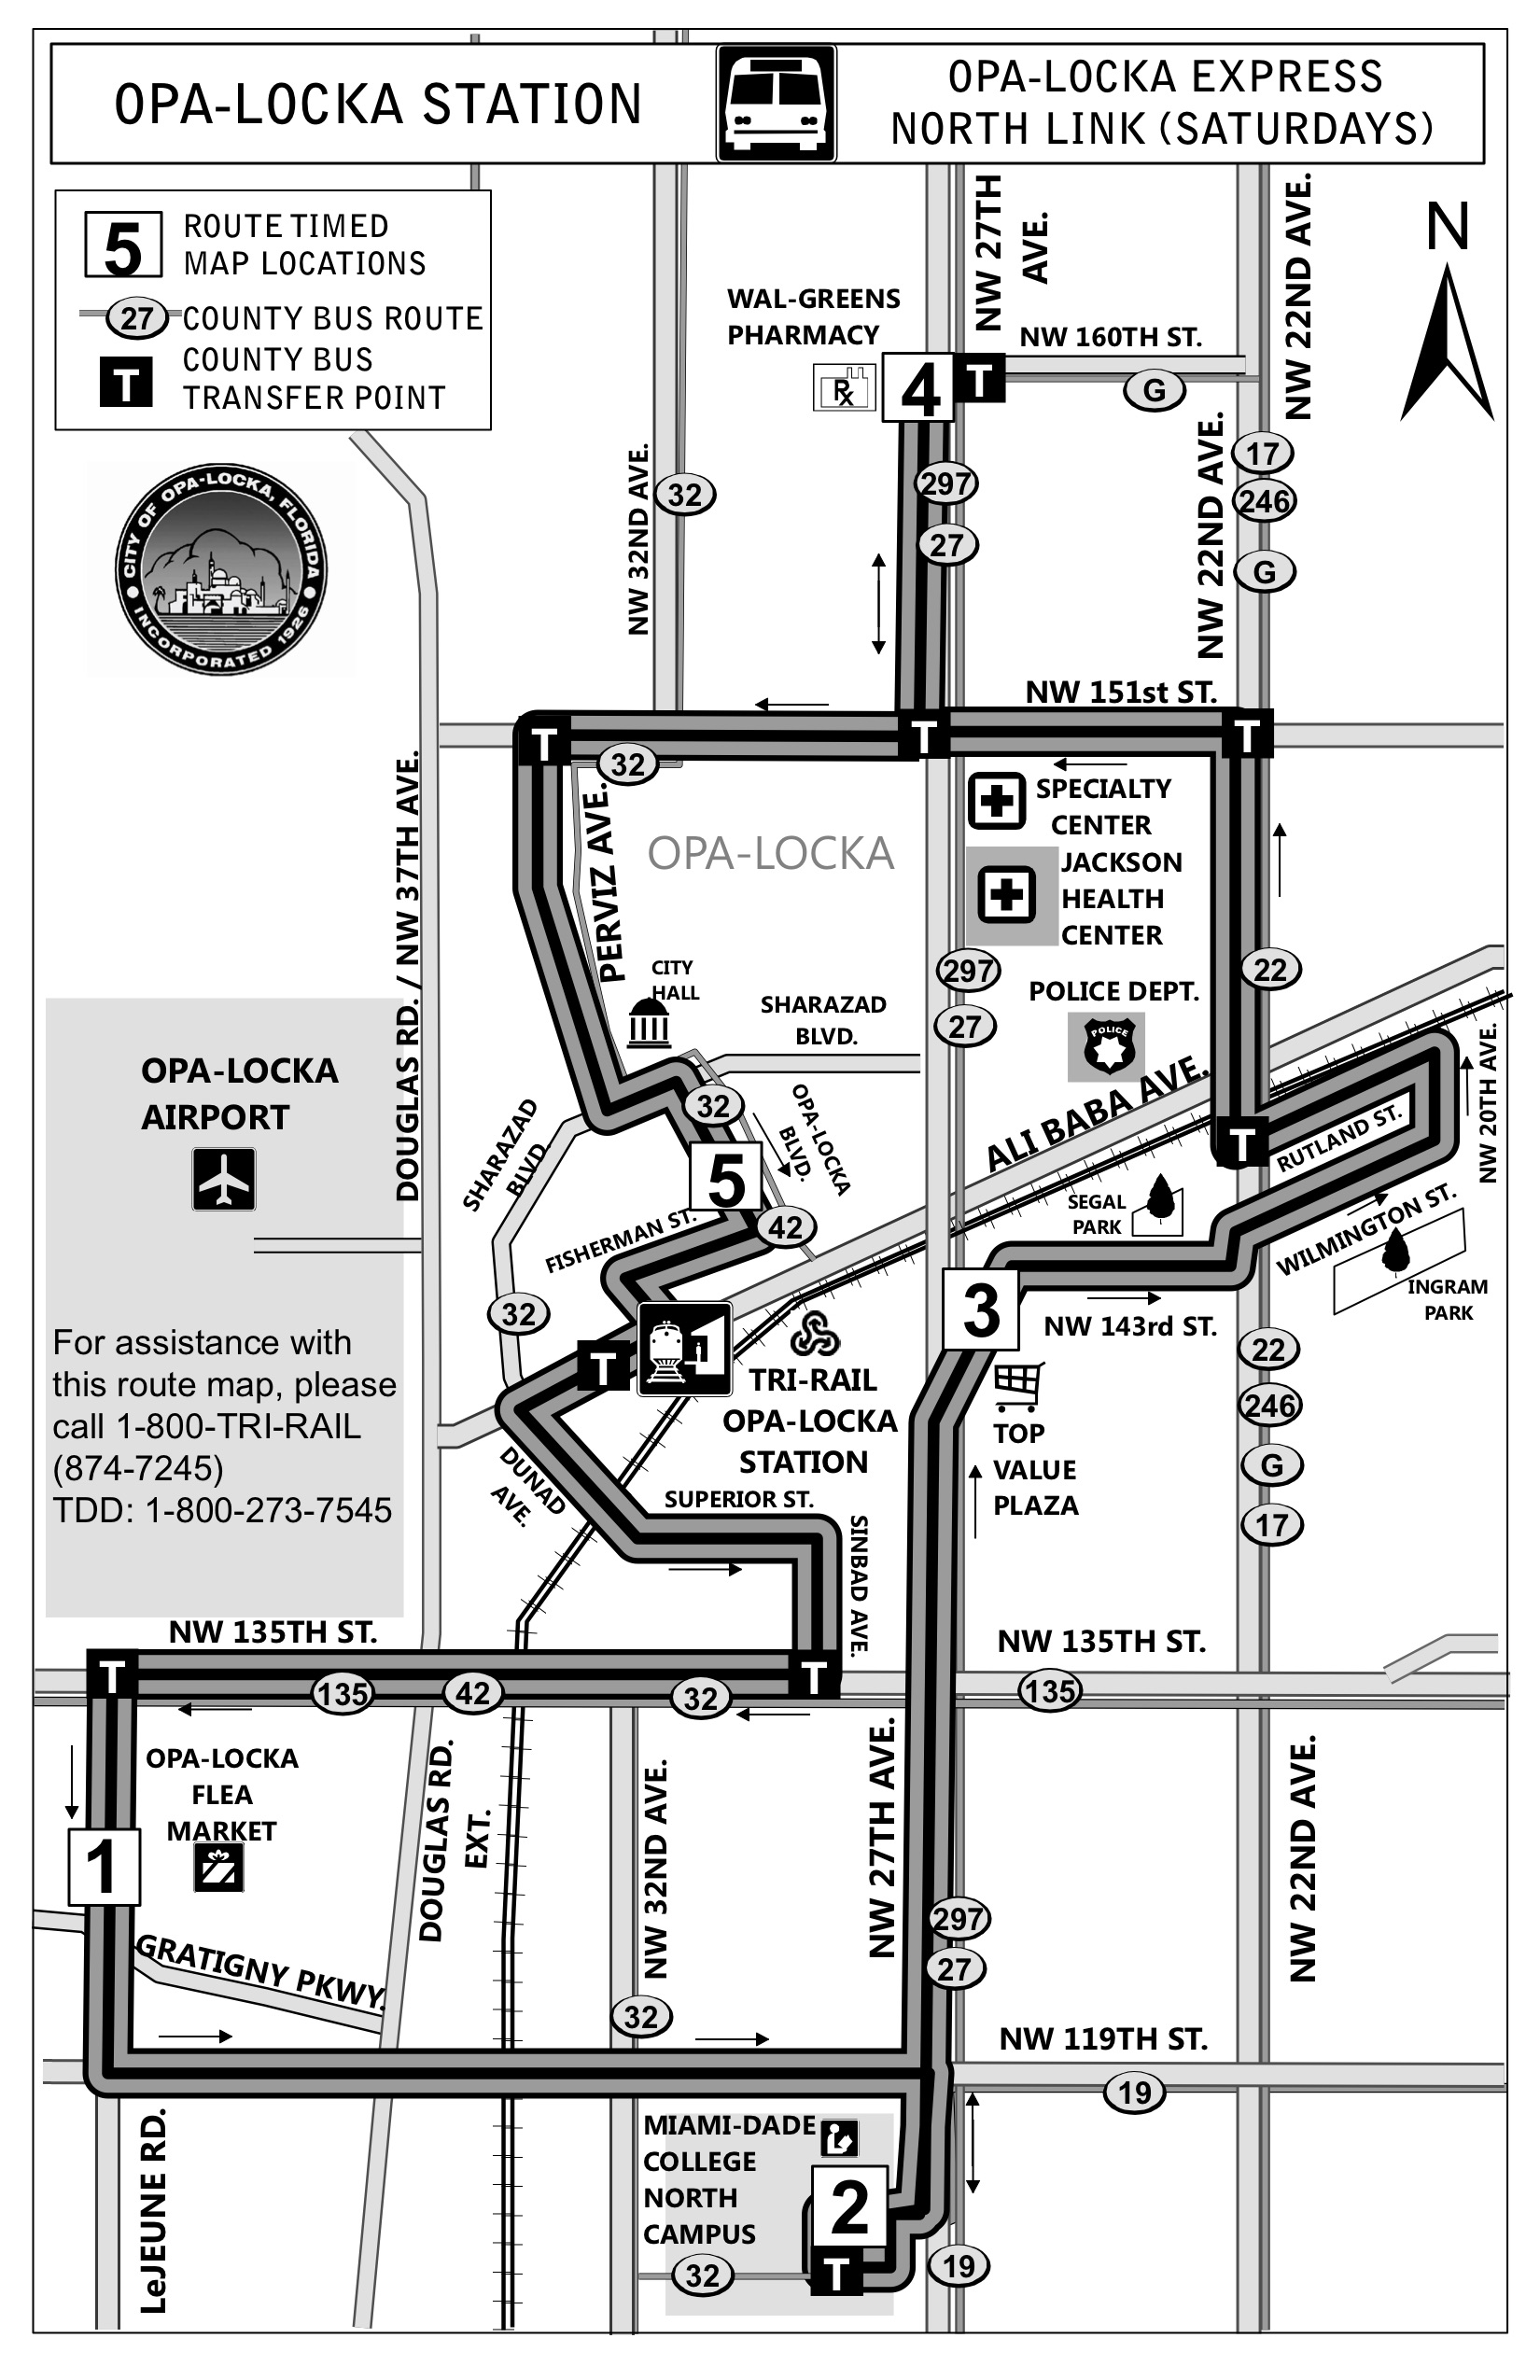 Opa-locka North Link Map2.jpg